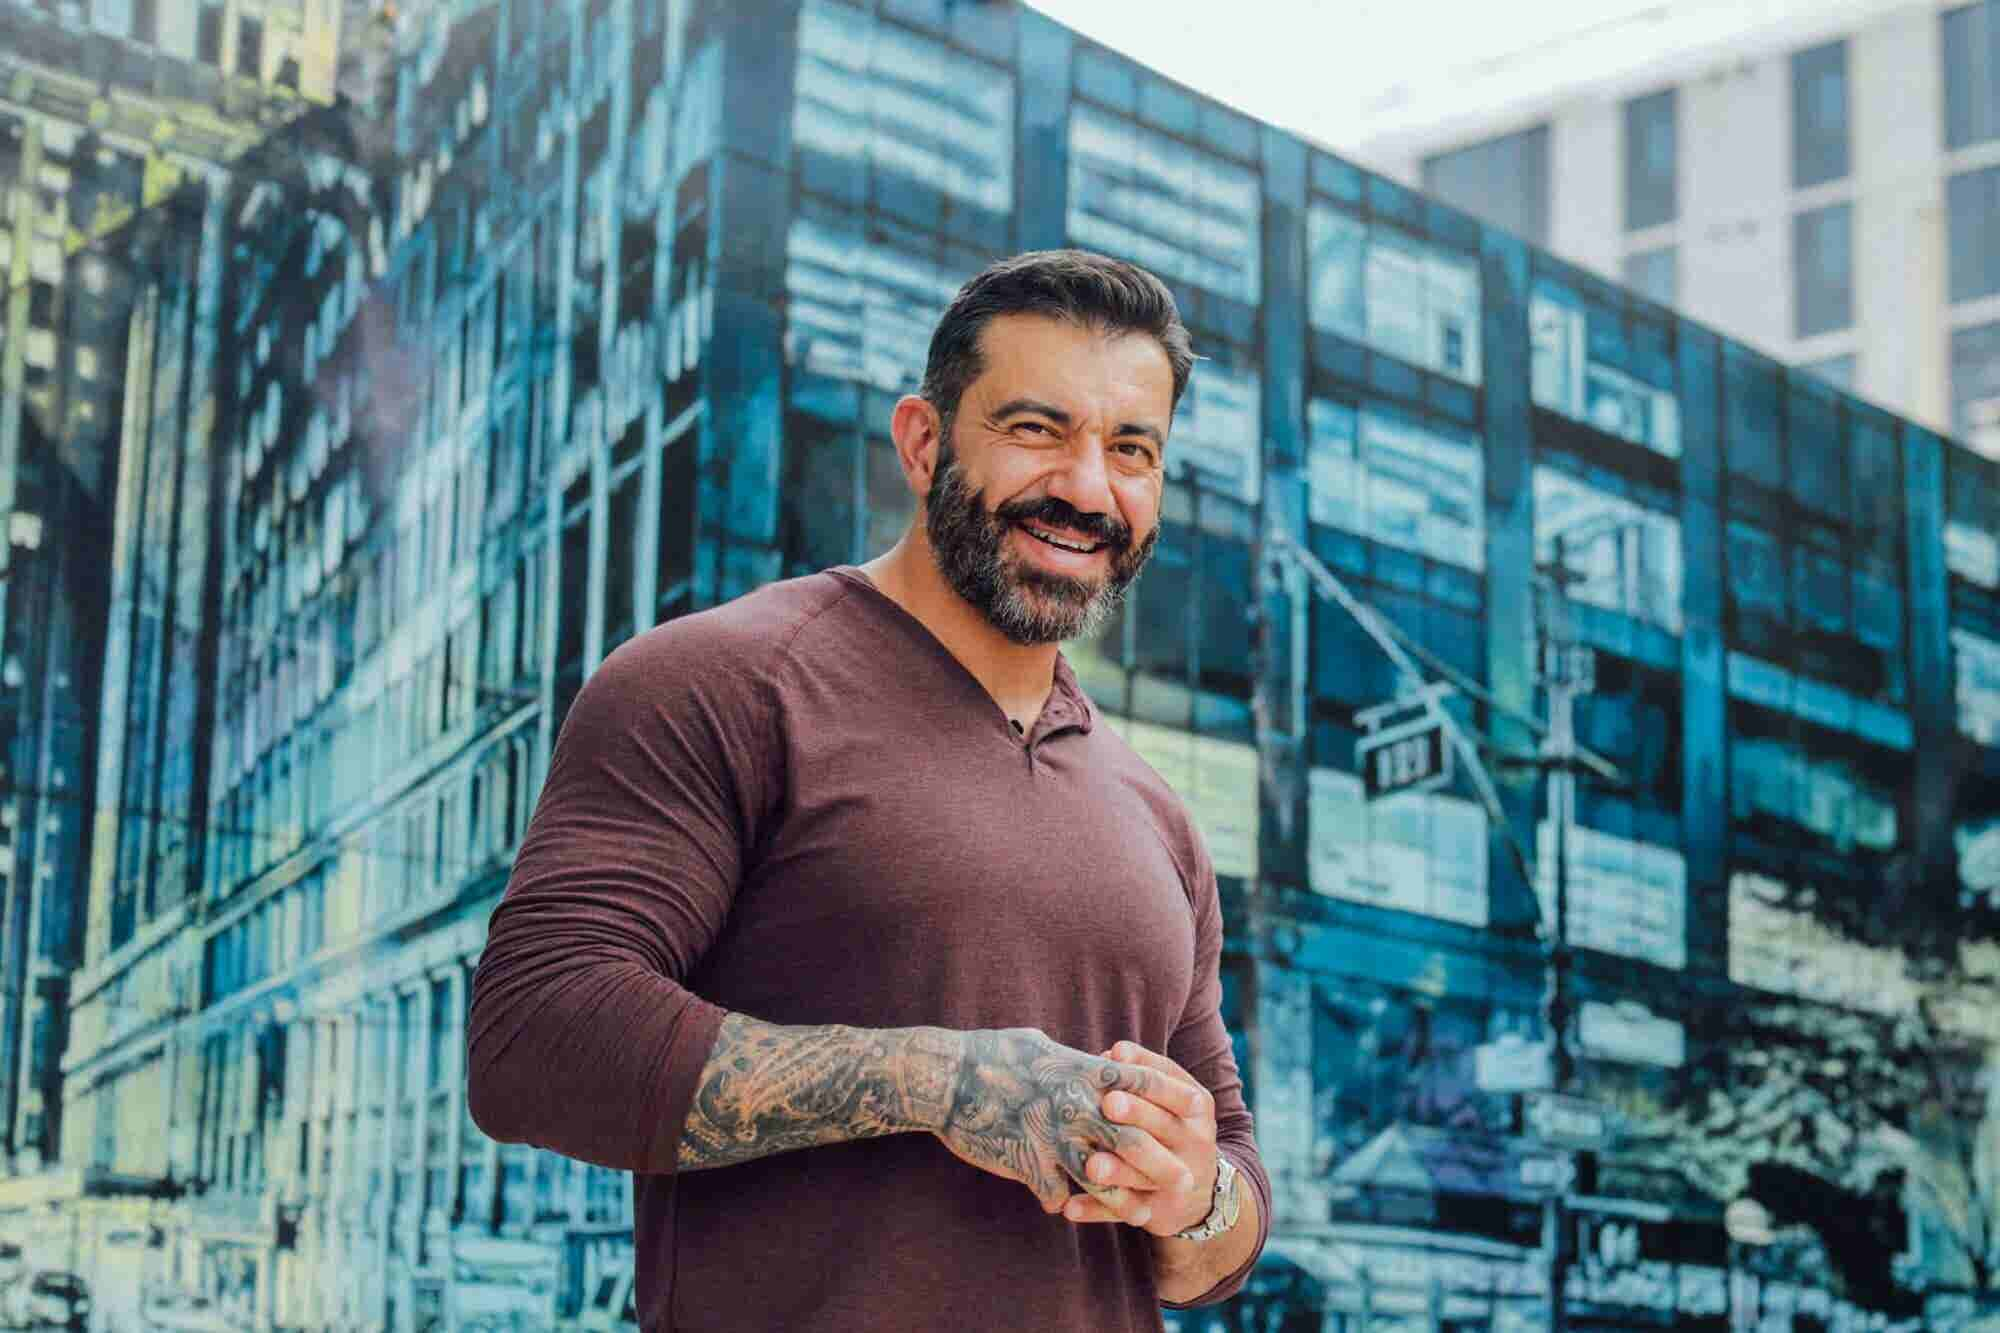 How This Entrepreneur Overcame Anxiety Attacks and Turned His Life Around